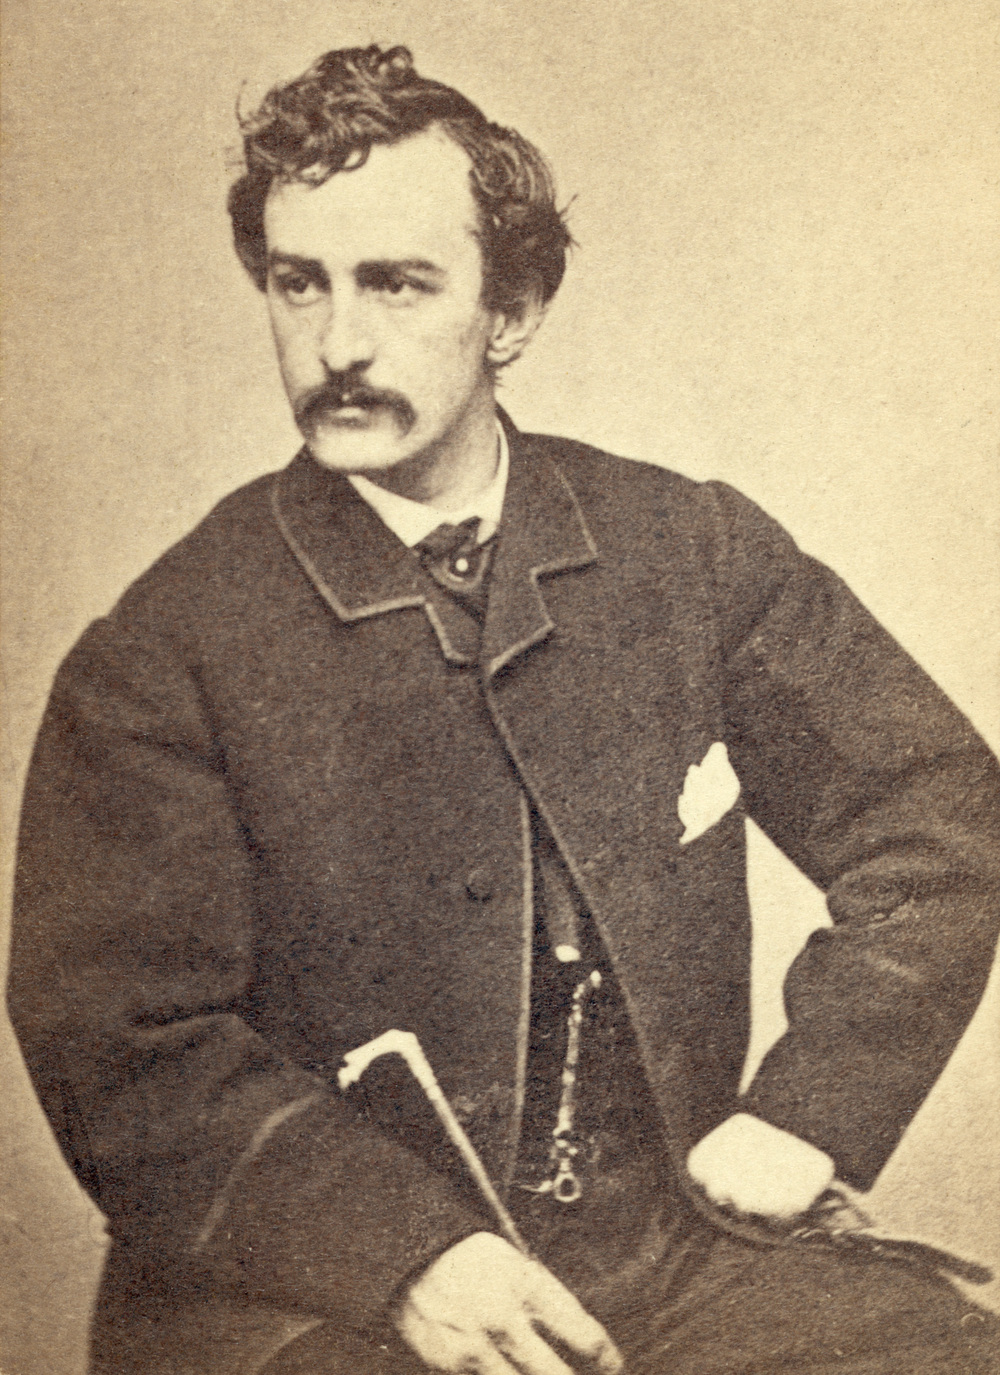 John   Wilkes   Booth in a photograph by Alexander Gardner, circa 1865, the year he assassinated President Abraham Lincoln.